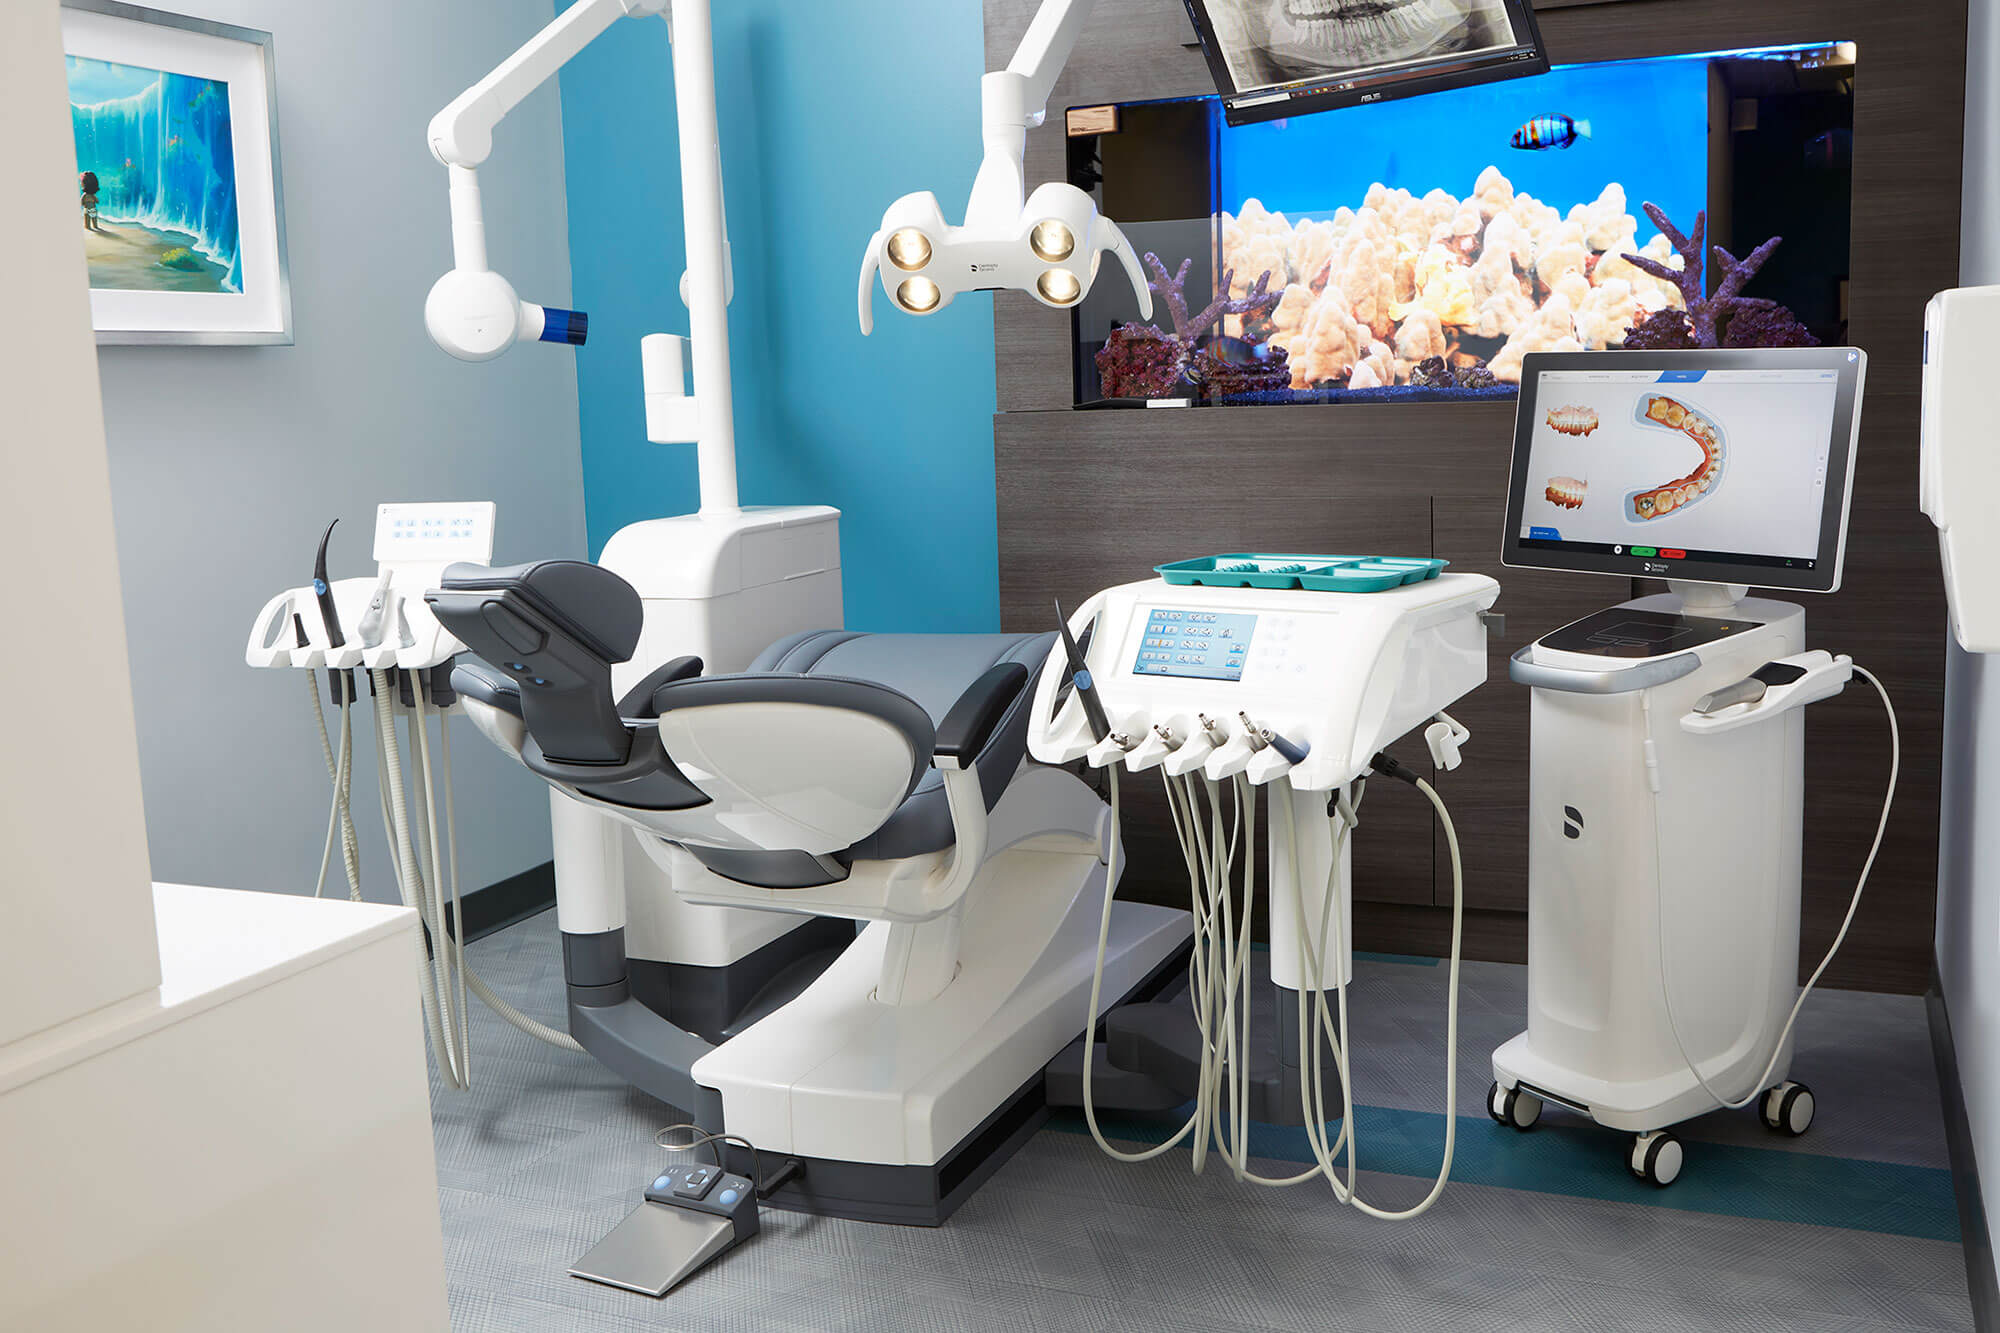 dental exam room with chair and dental equipment